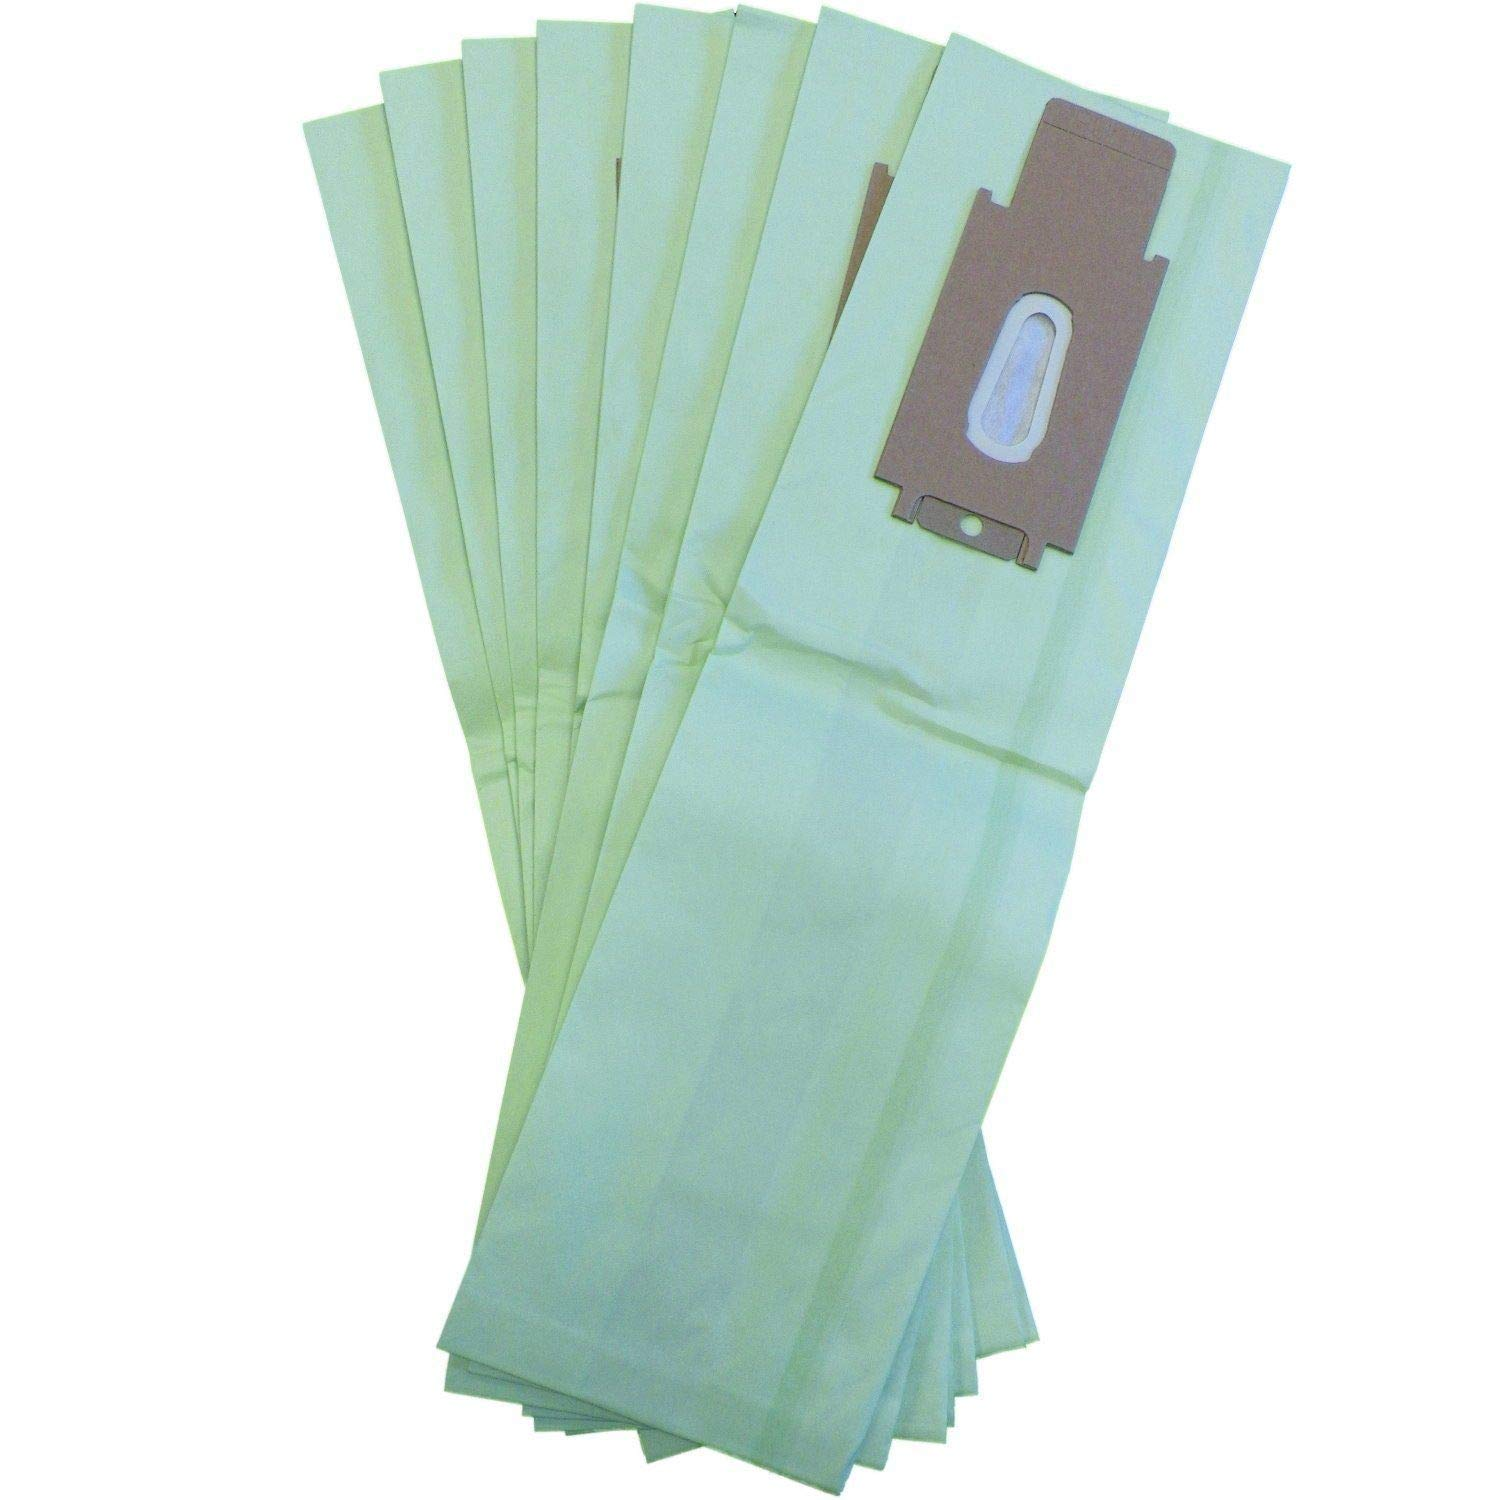 Oreck XL Green Double Wall Type CC Upright Vacuum Cleaner Bags Generic by DVC (Pack of 8) by DVC